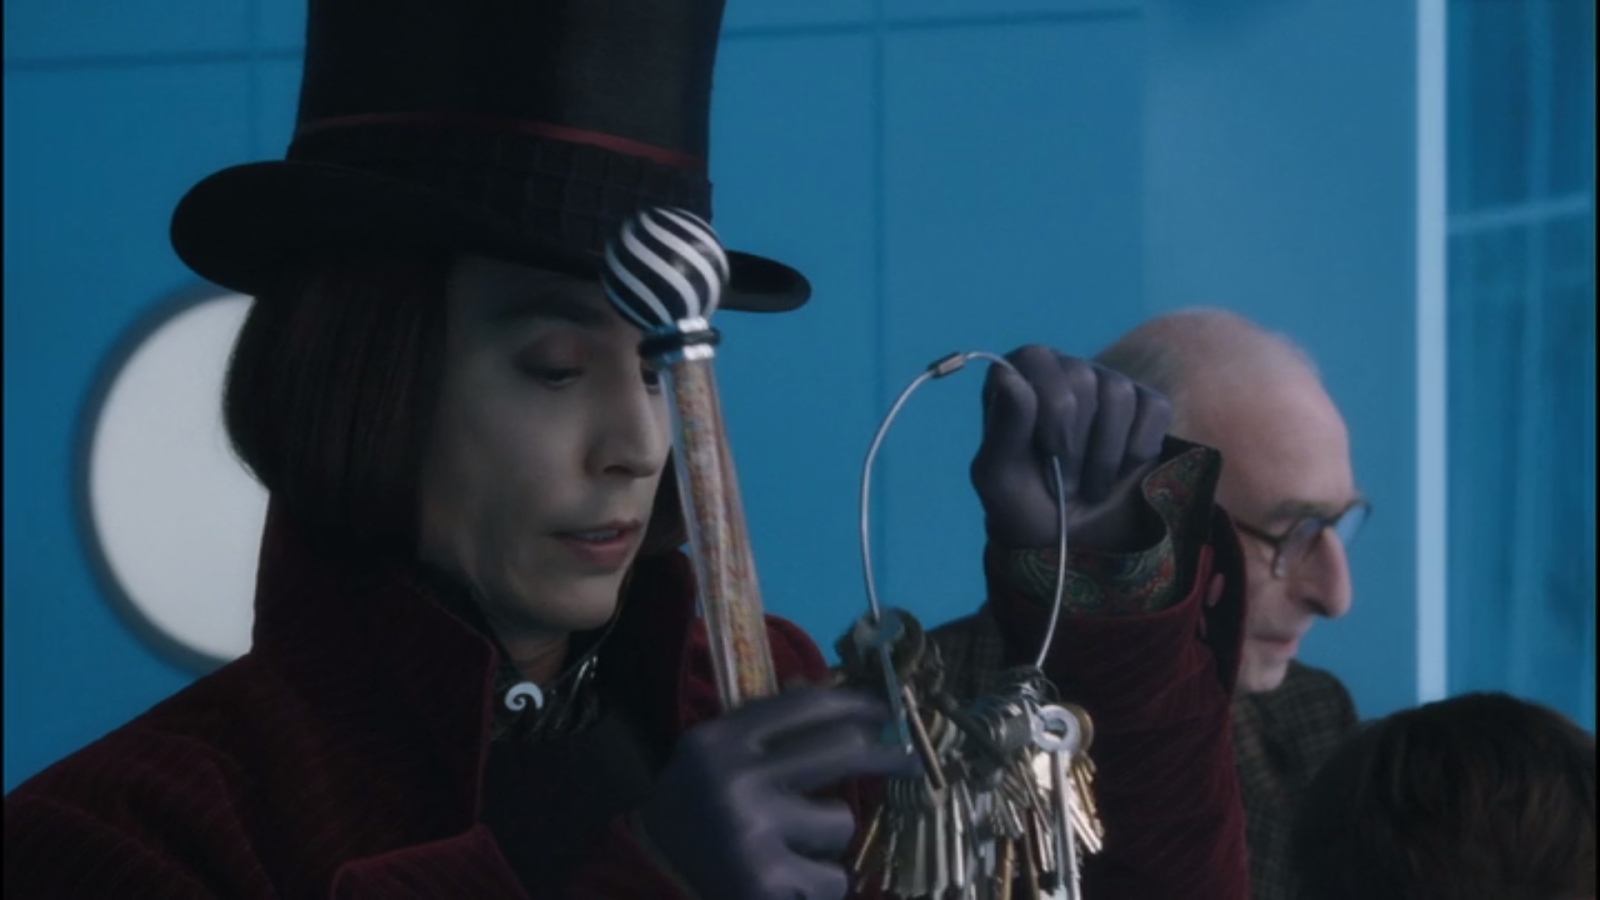 AoM: Movies et al.: Charlie and the Chocolate Factory (2005)